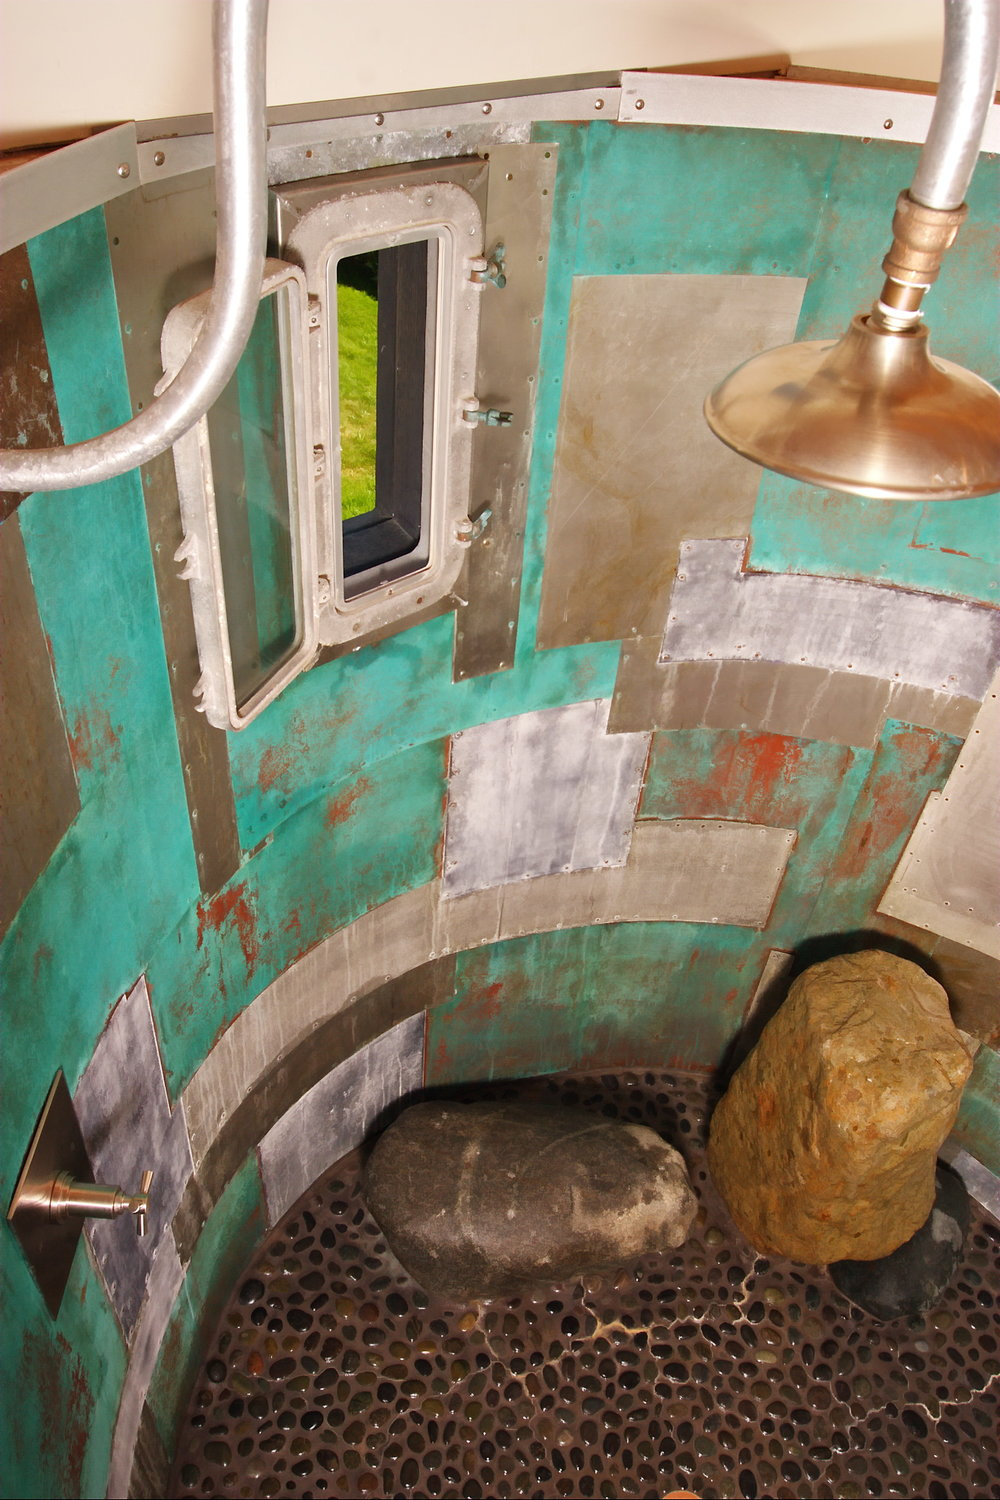 oxidized metal patchwork shower with porthole window to outdoors and natural stone.jpg